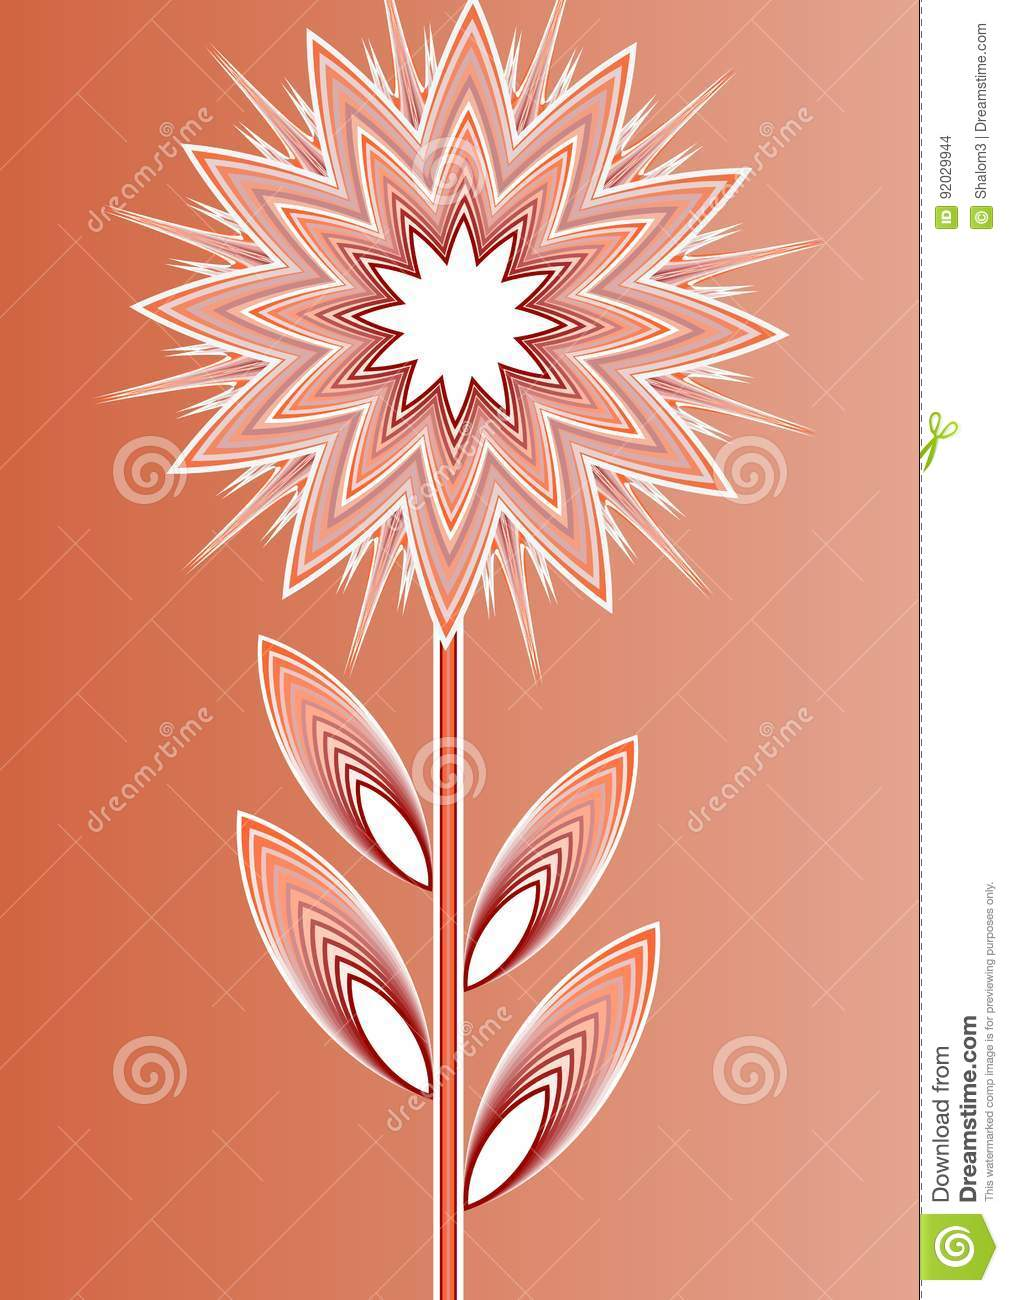 L orange a isolé la fleur d imagination sur le fond de gradient, l illustration de schéma, calibre pour l affiche, invitation